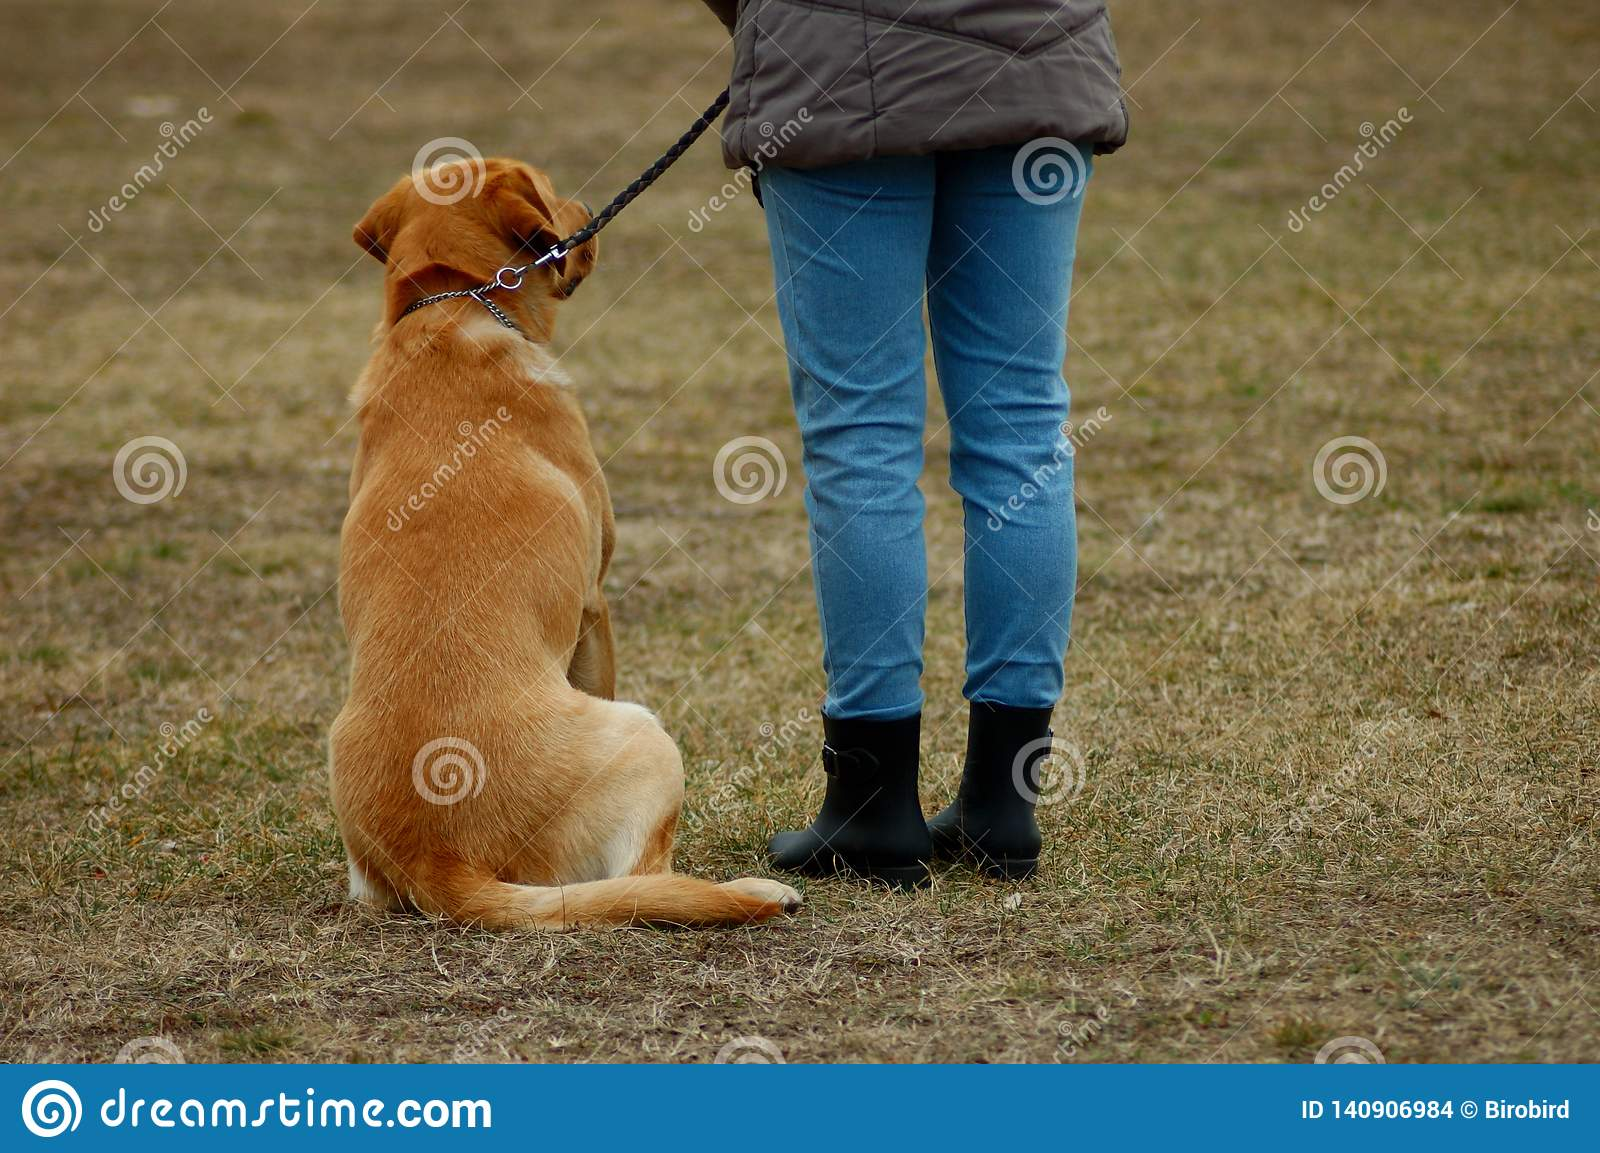 Cute dog sitting next to his owner, learning in dog-school